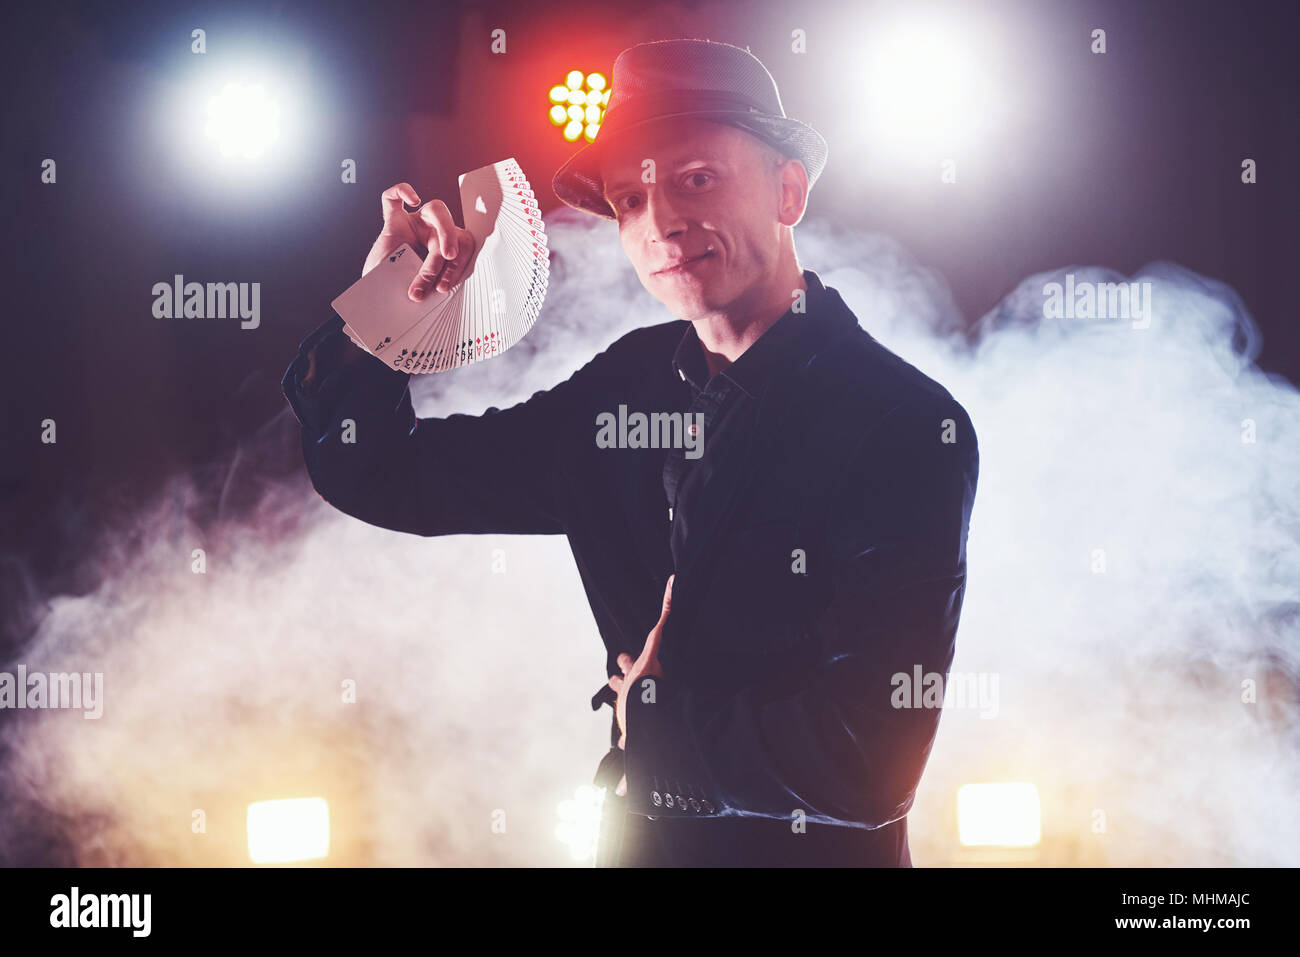 Magician showing trick with playing cards. Magic or dexterity, circus, gambling. Prestidigitator in dark room with fog Stock Photo